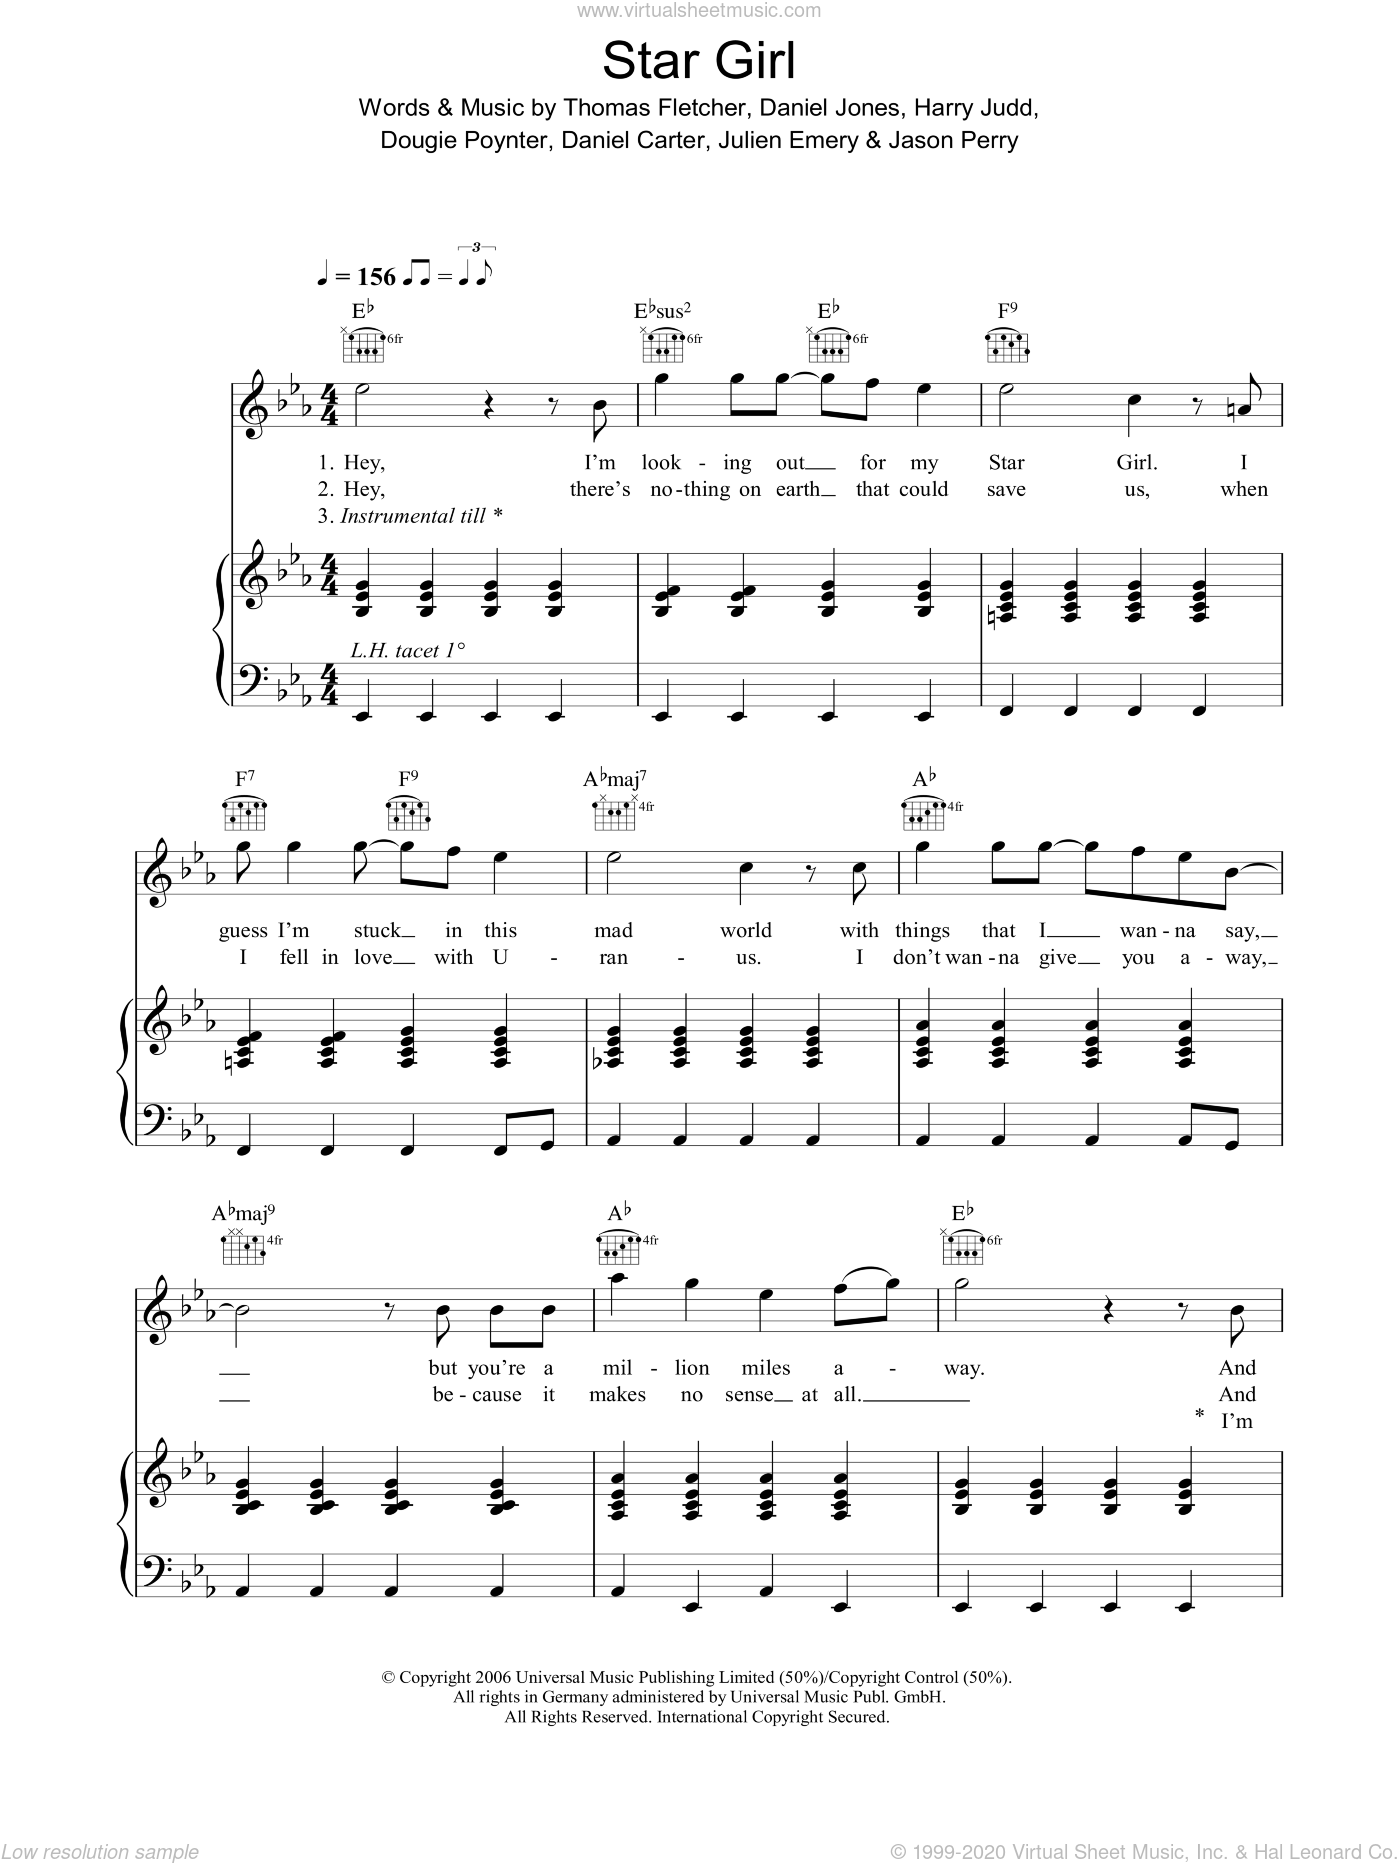 Star Girl sheet music for voice, piano or guitar by Thomas Fletcher